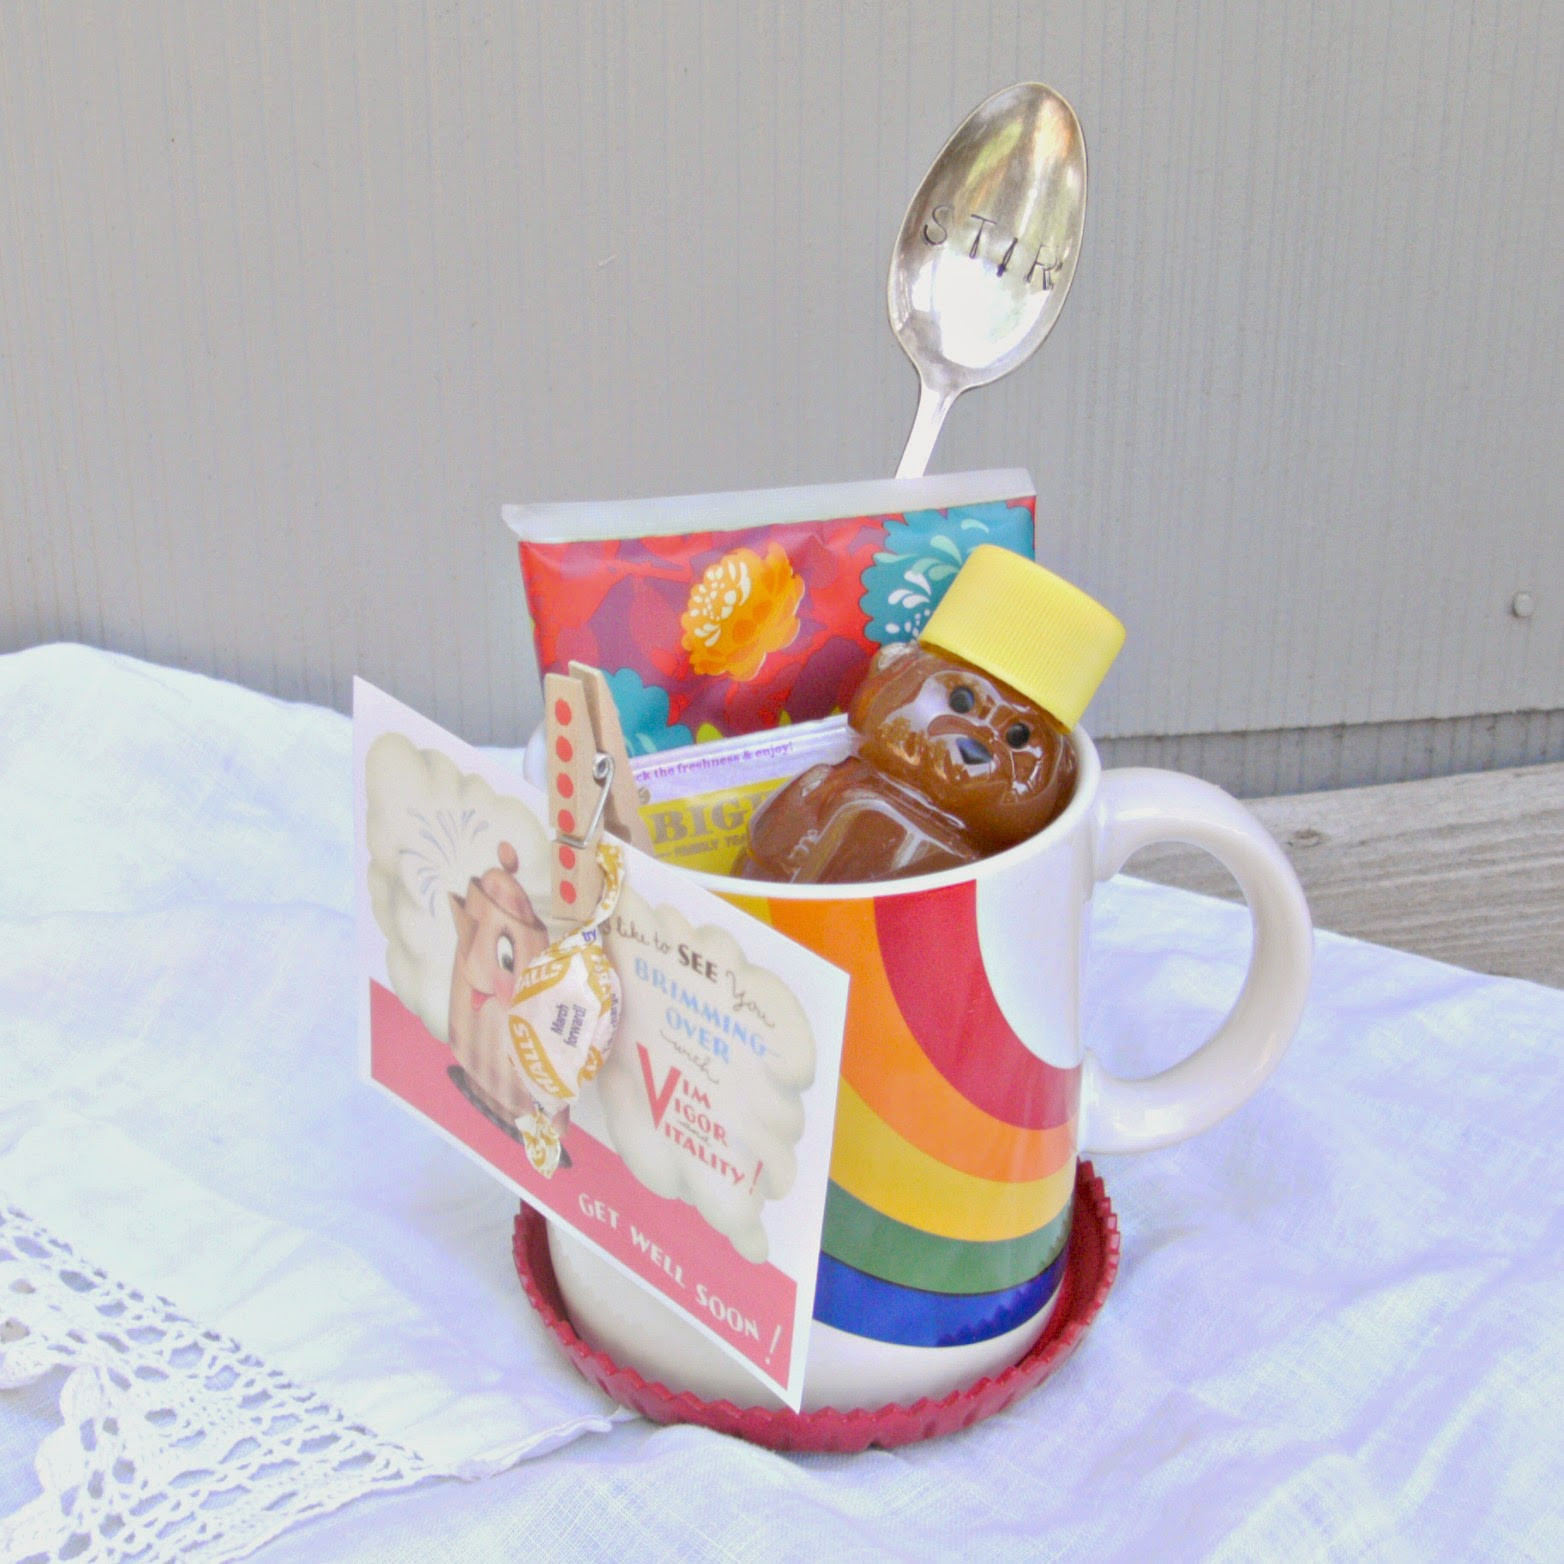 Best ideas about Coffee Mug Gift Ideas . Save or Pin DIY Coffee Mug Gift Baskets Little Vintage Cottage Now.